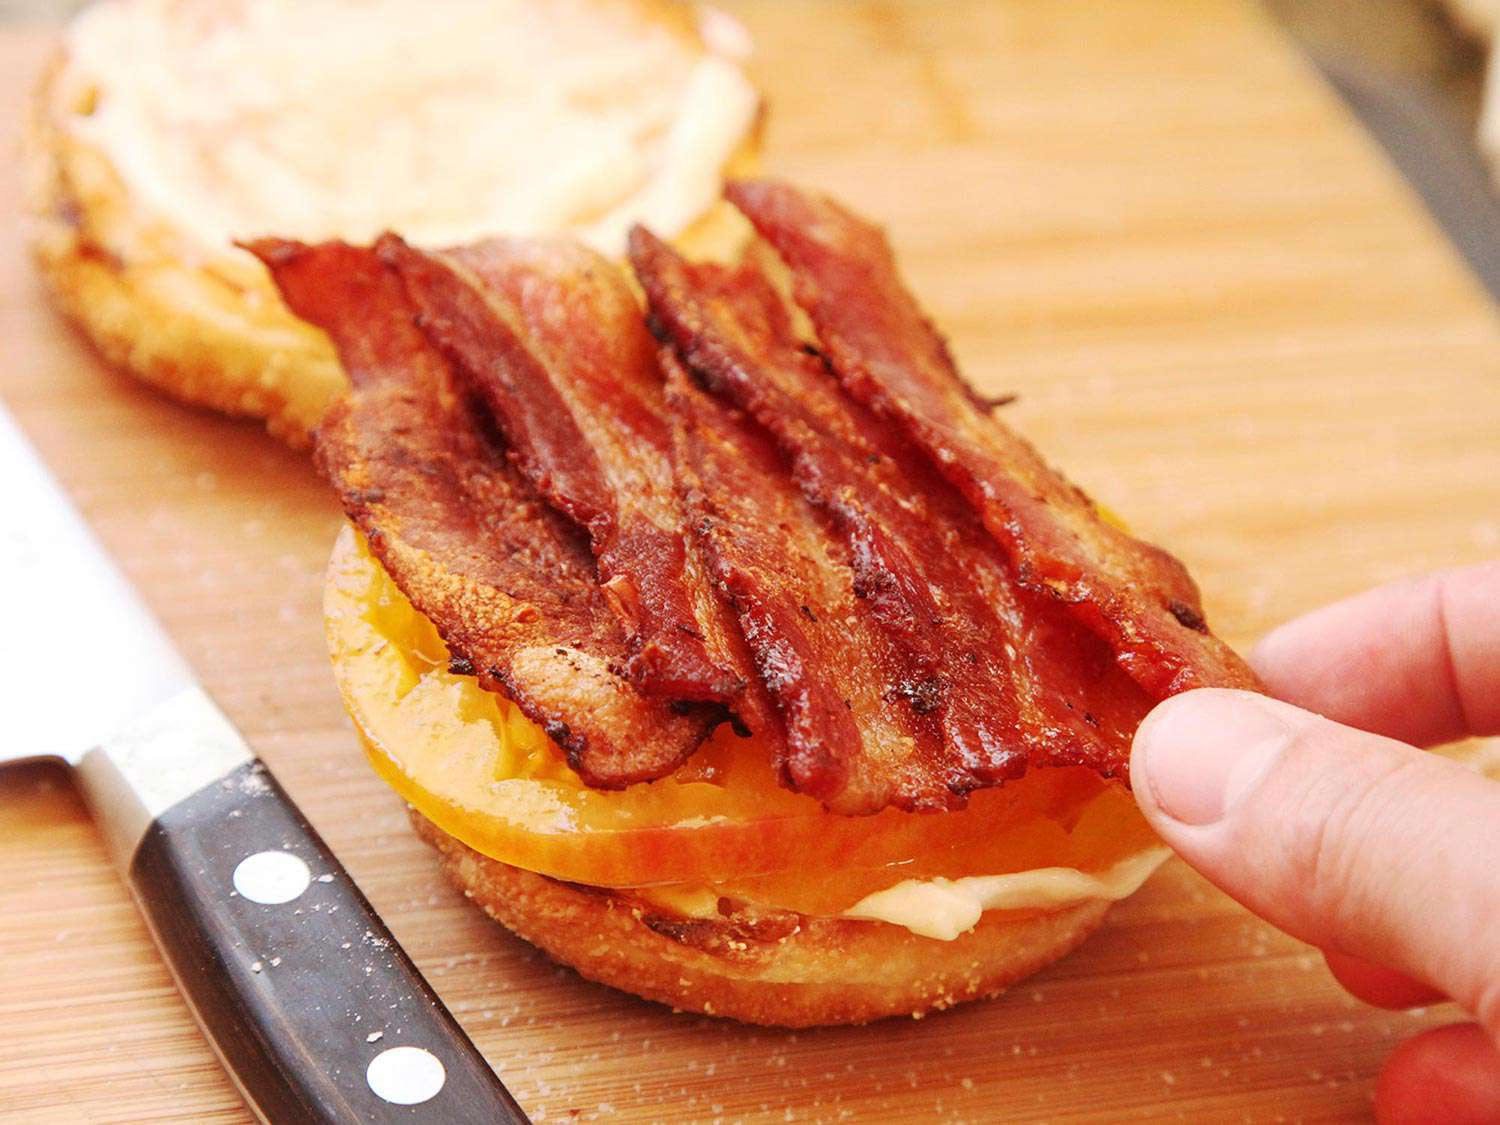 Laying bacon strips on top of tomato and mayo on a toasted English muffin half